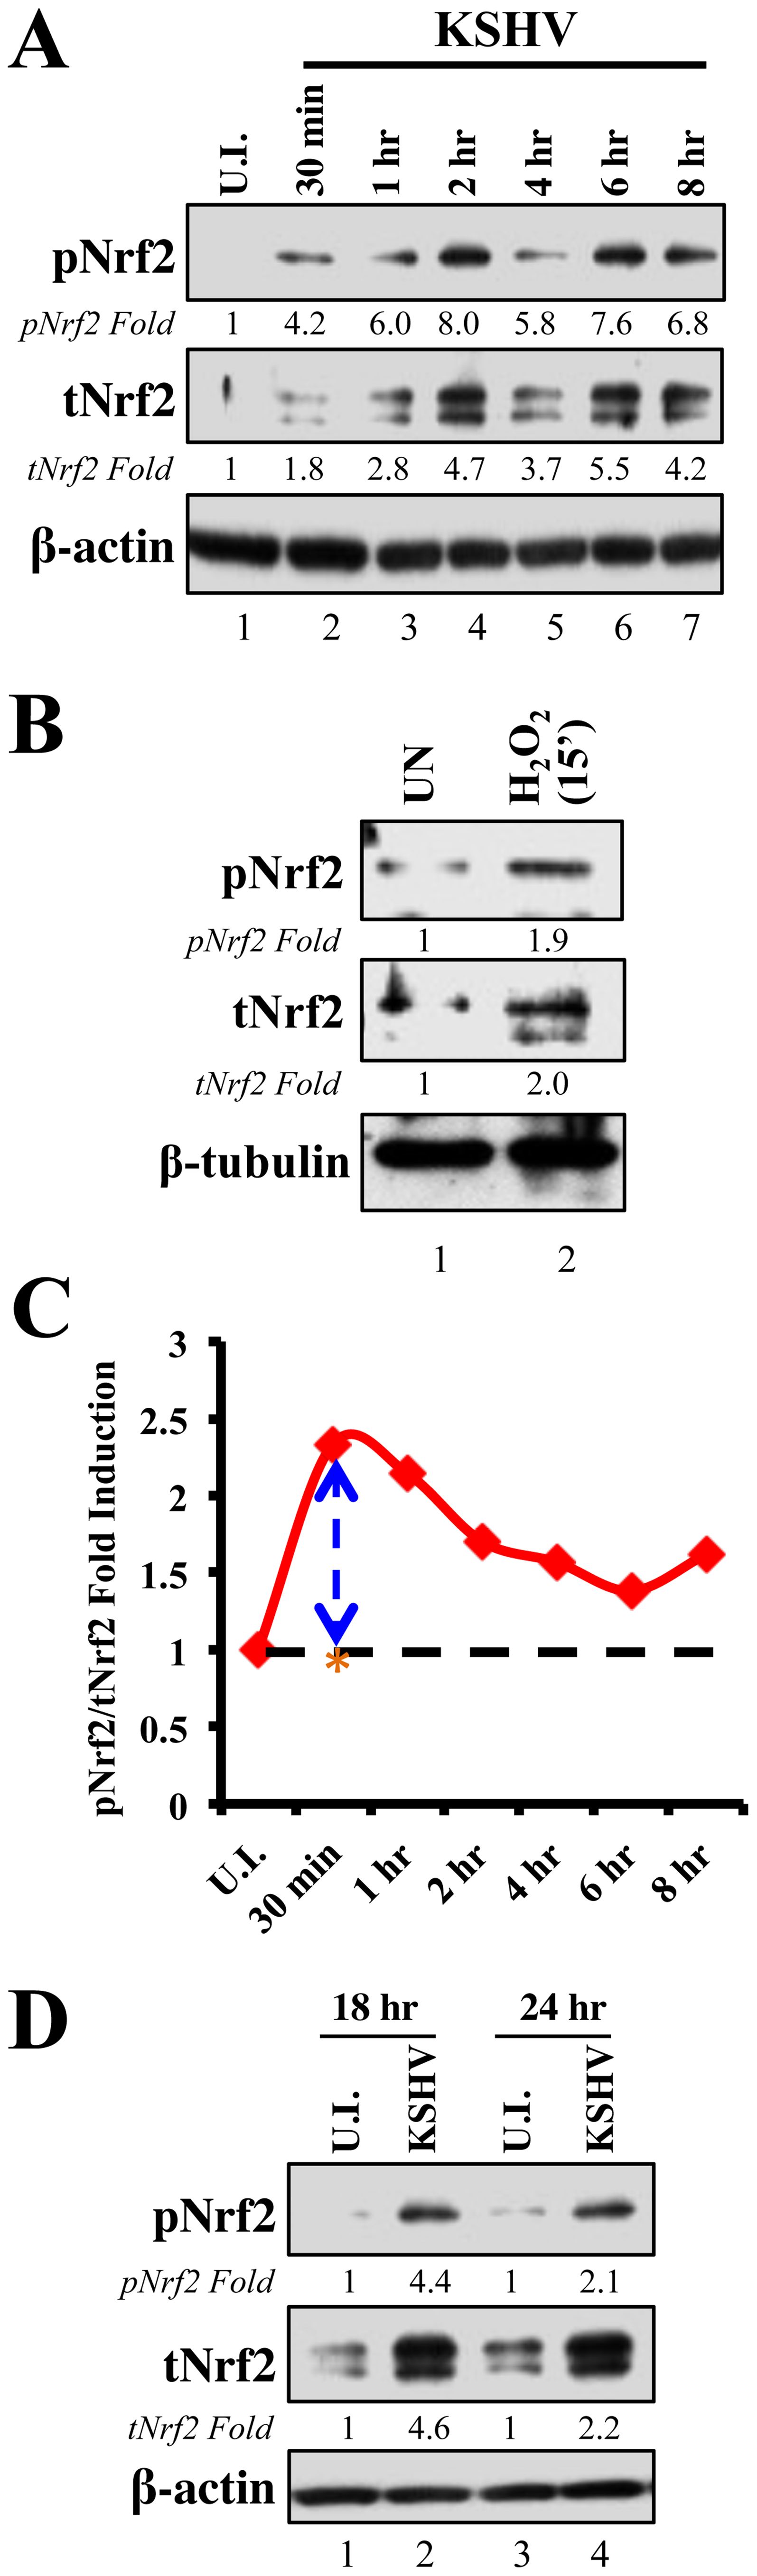 Induction of Nrf2 activity during <i>de novo</i> KSHV infection.